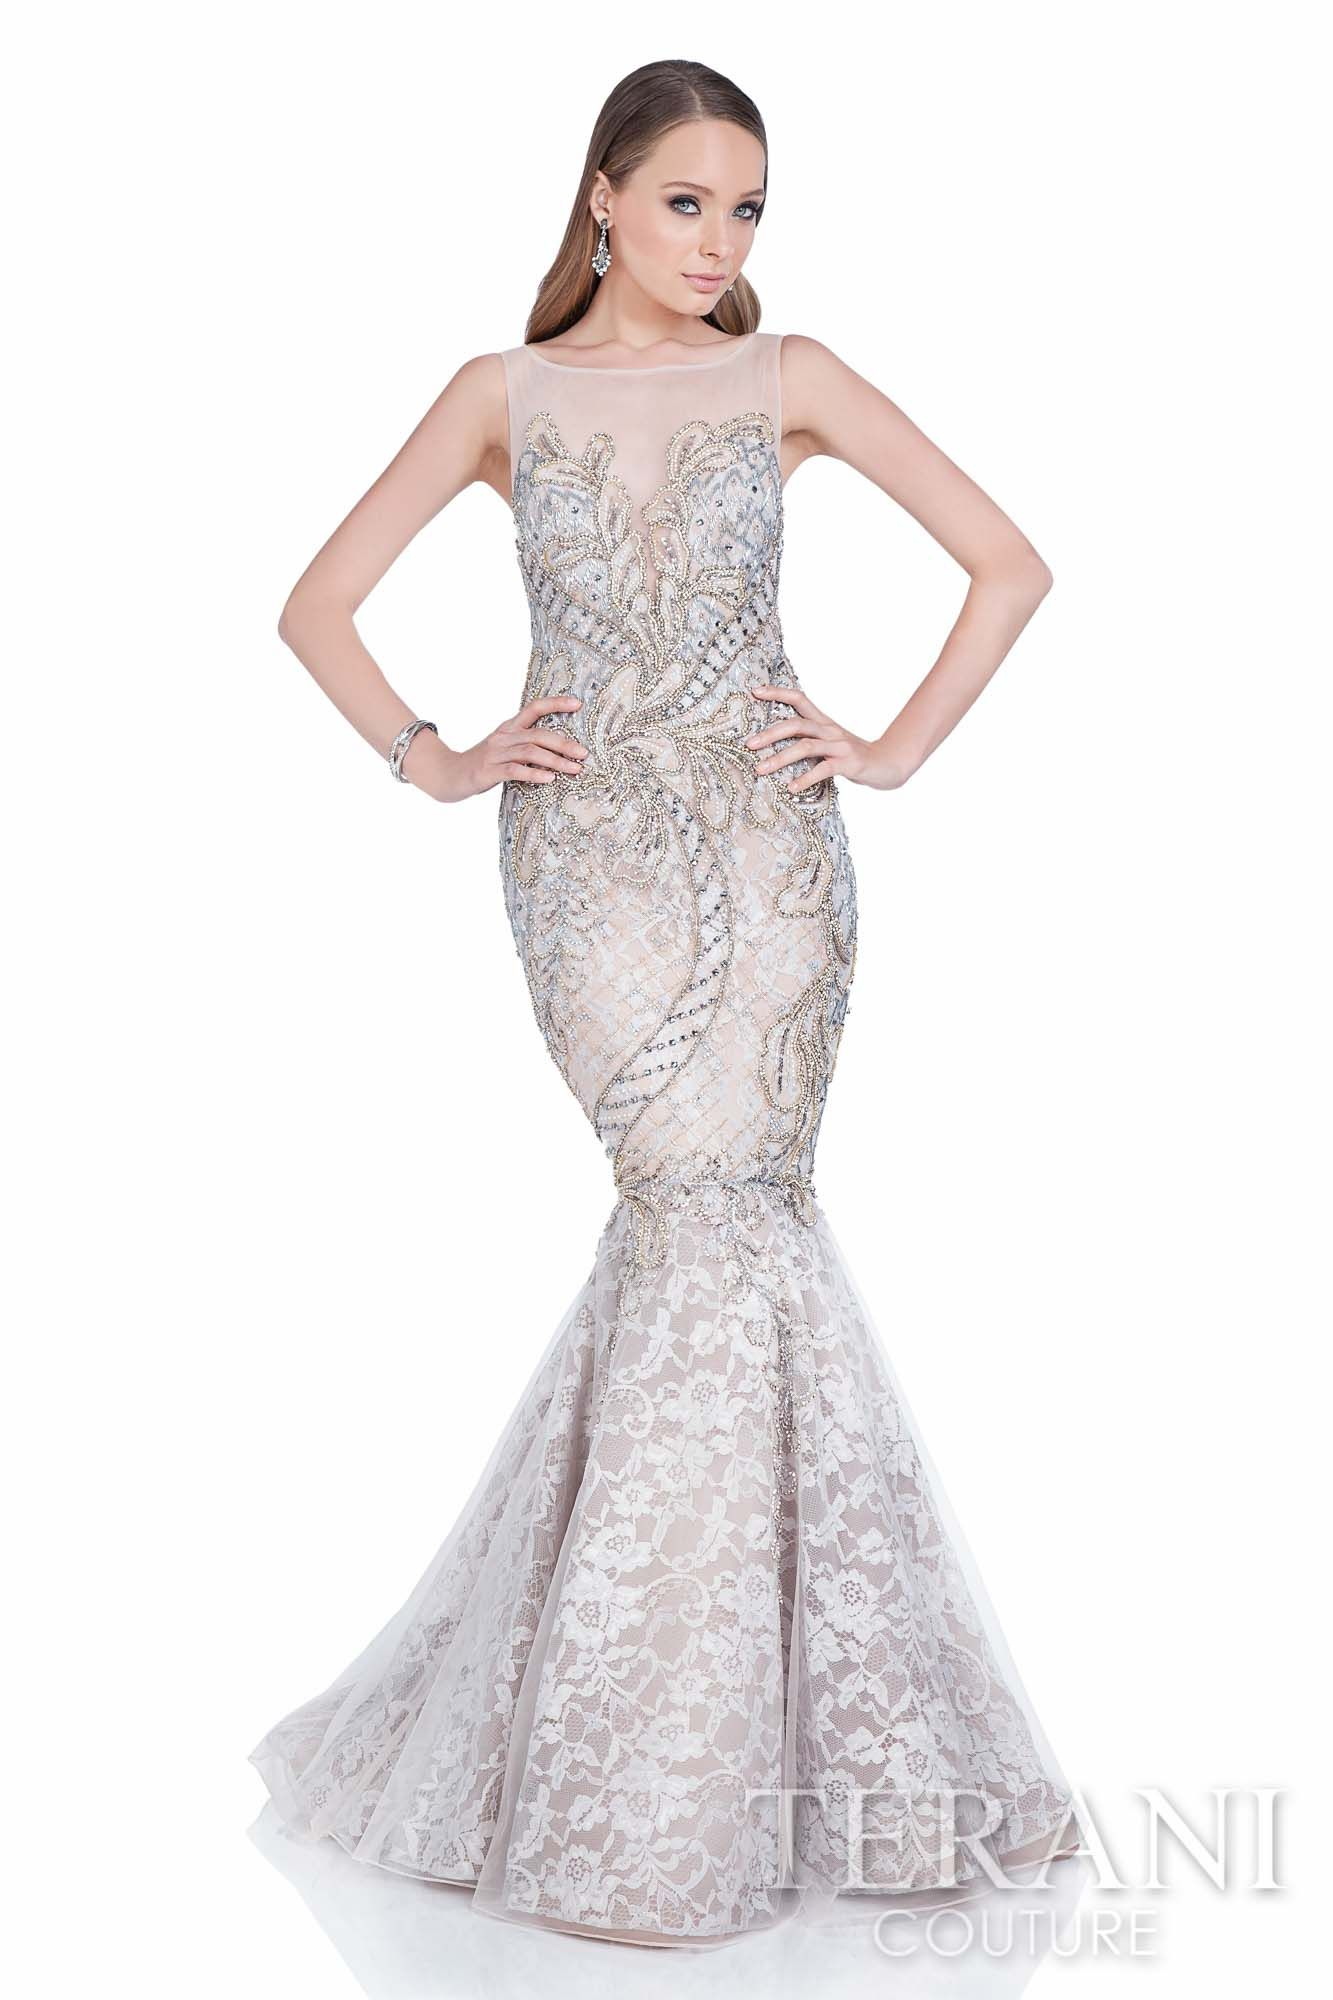 Terani couture stunning mesh and lace mermaid gown accented with